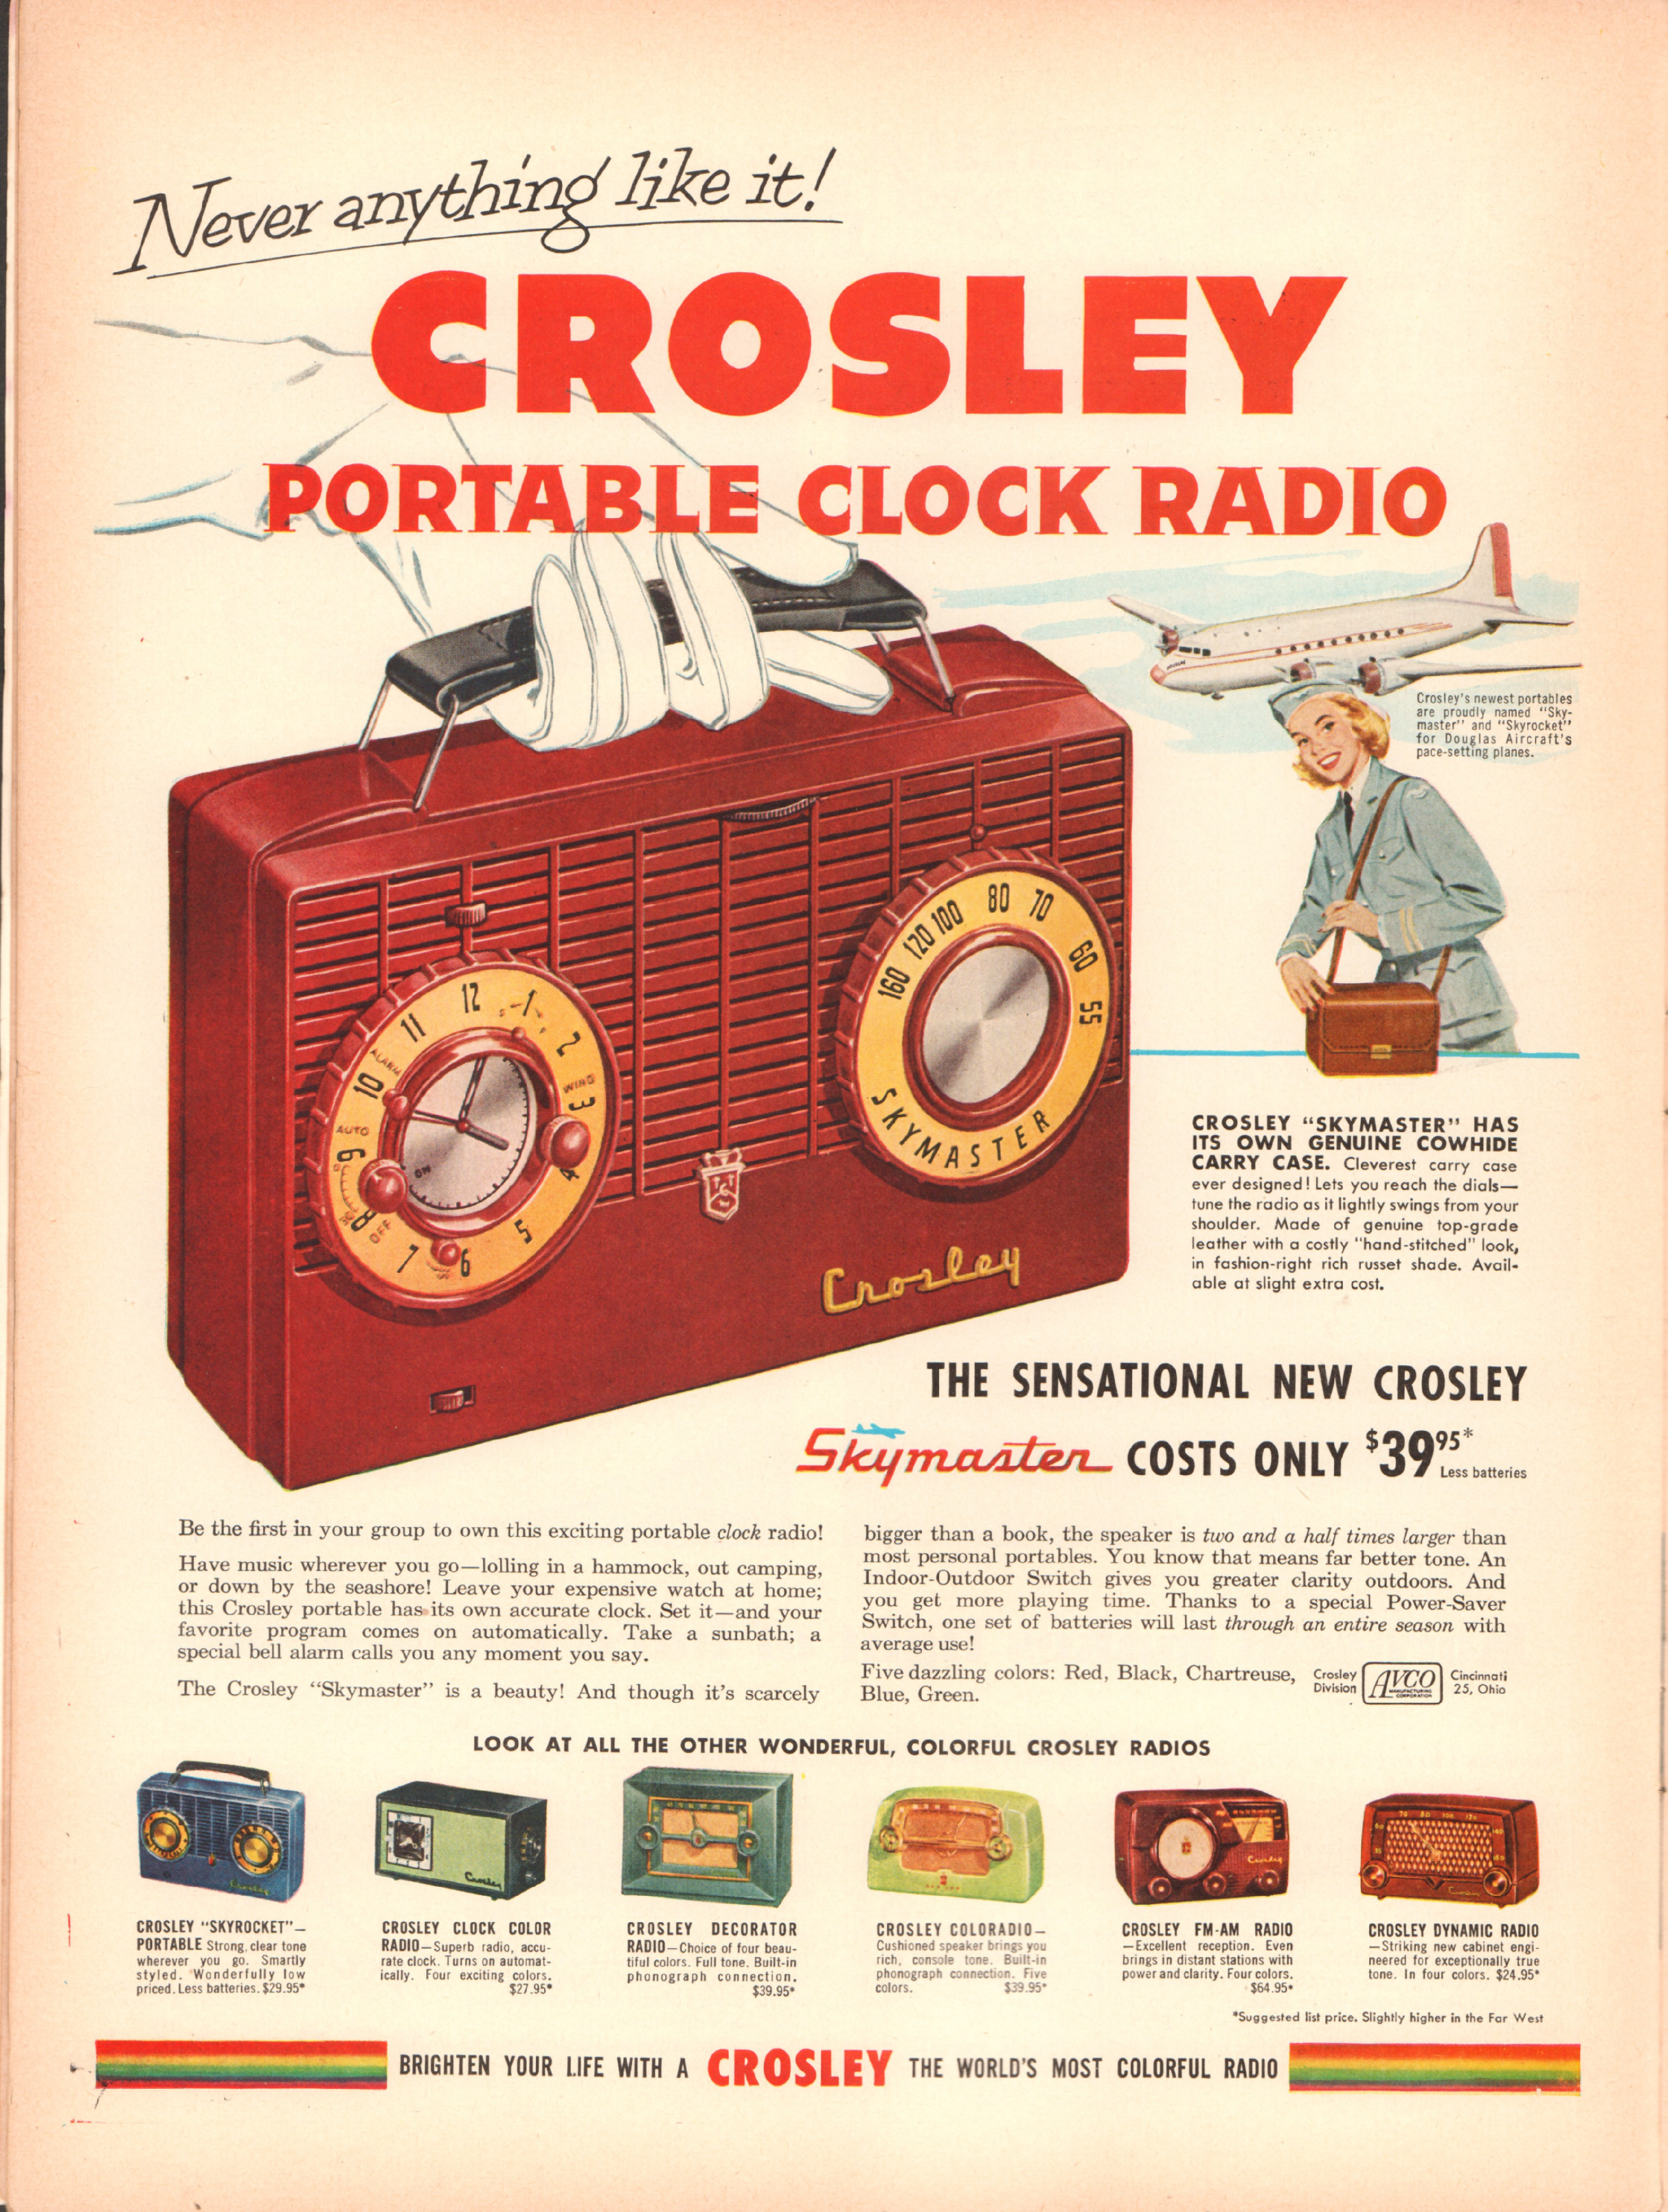 Crosley - published in Life - June 15, 1953